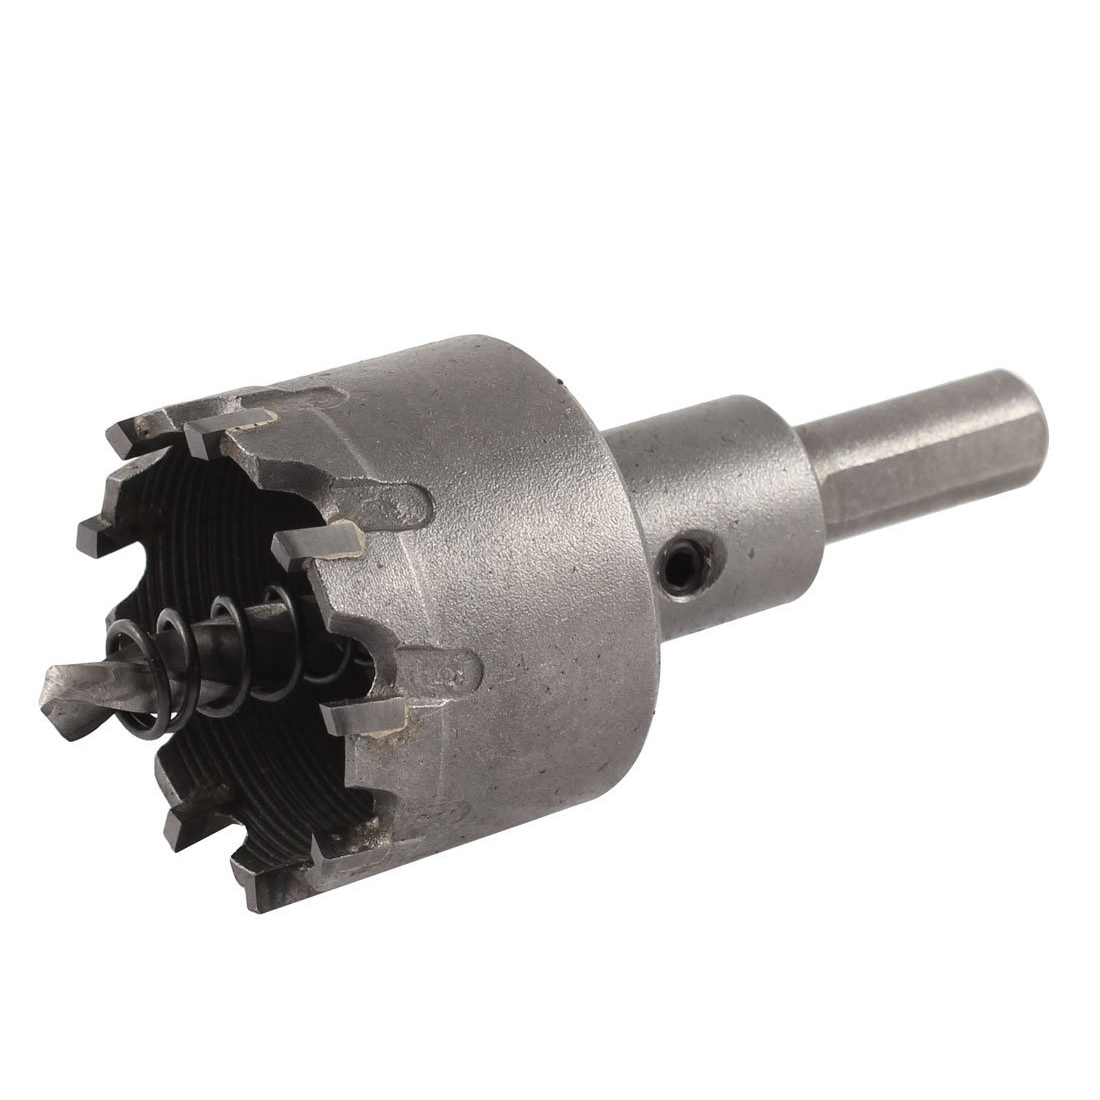 Подробнее о CSS Triangle Shank 6mm Twist Drill Bit 38mm Dia Stainless Steel Hole Saw Cutter uxcell 6mm twist drill bit 21mm cutting dia stainless steel plate hole saw cutter